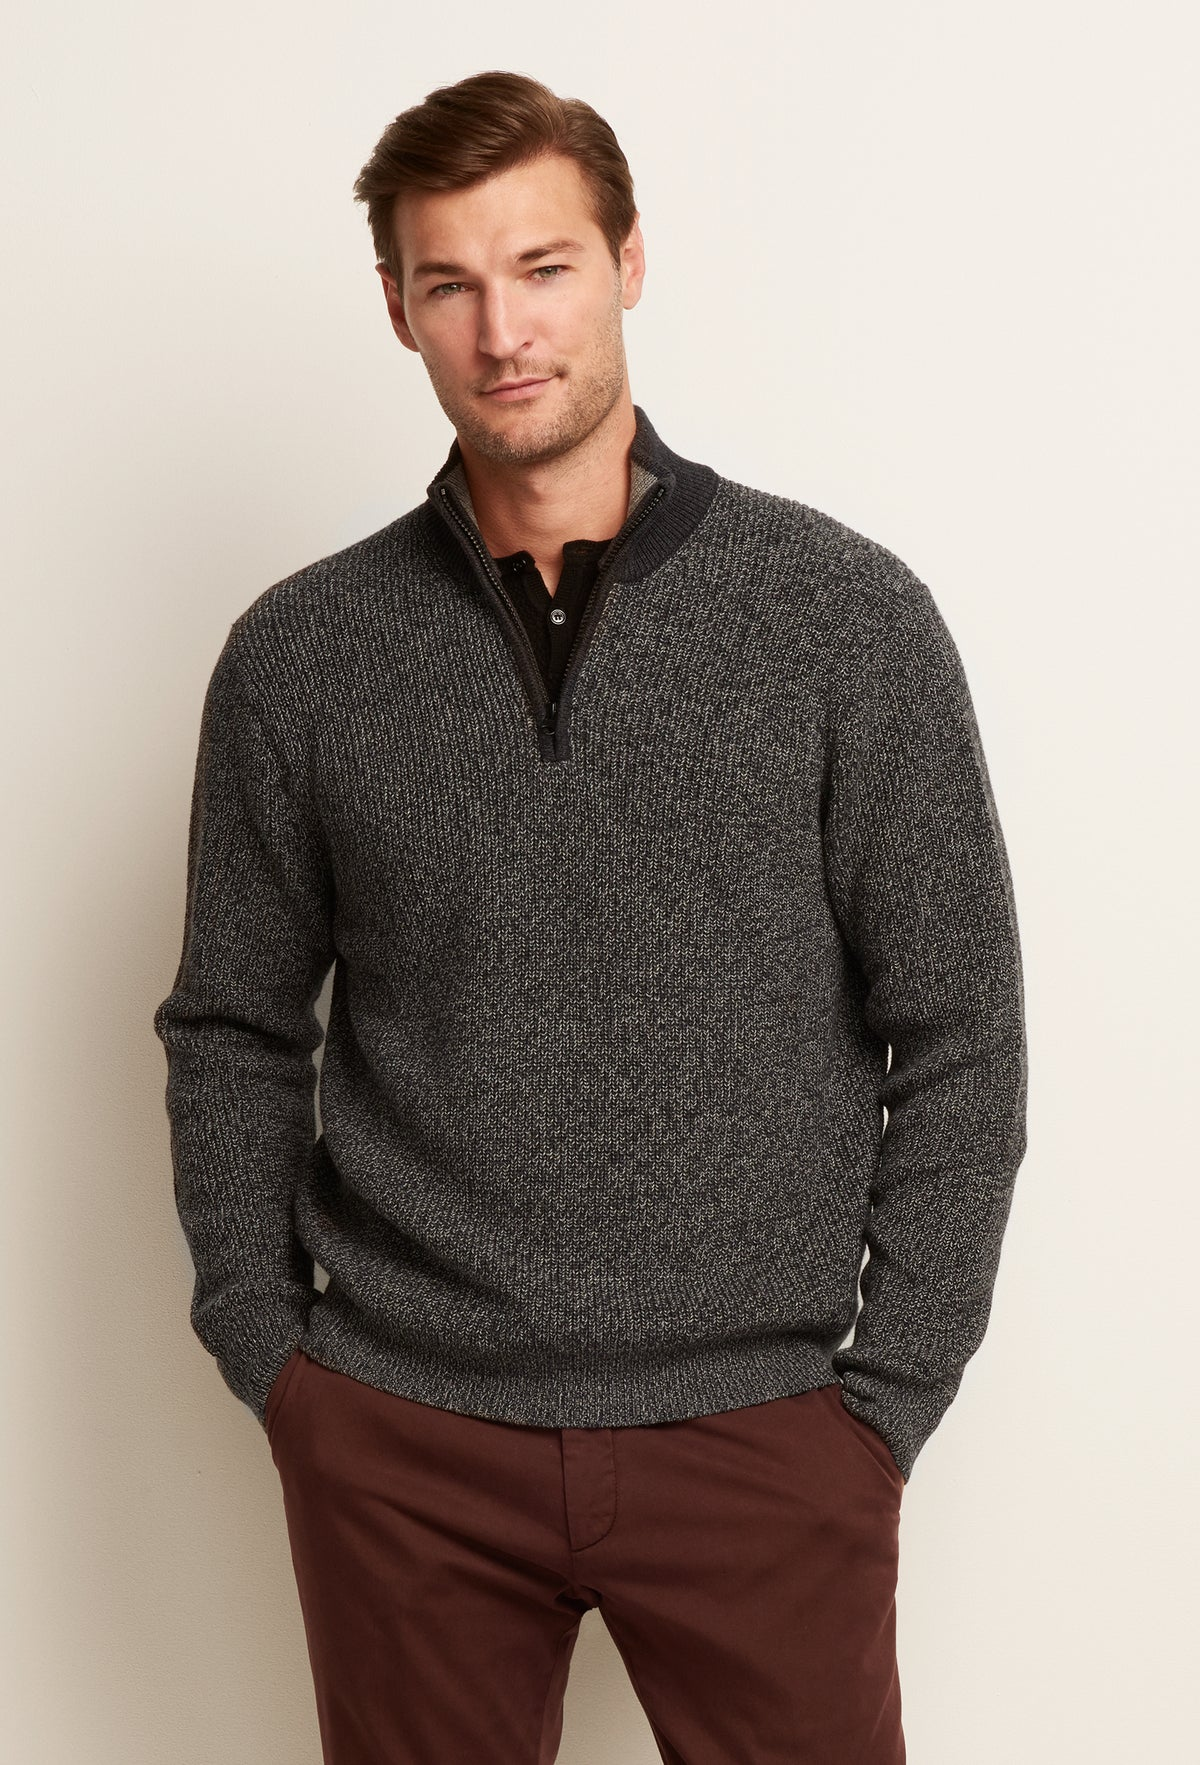 ZACHARY-PRELL-Fillmore-SweatersModern-Menswear-New-Dress-Code